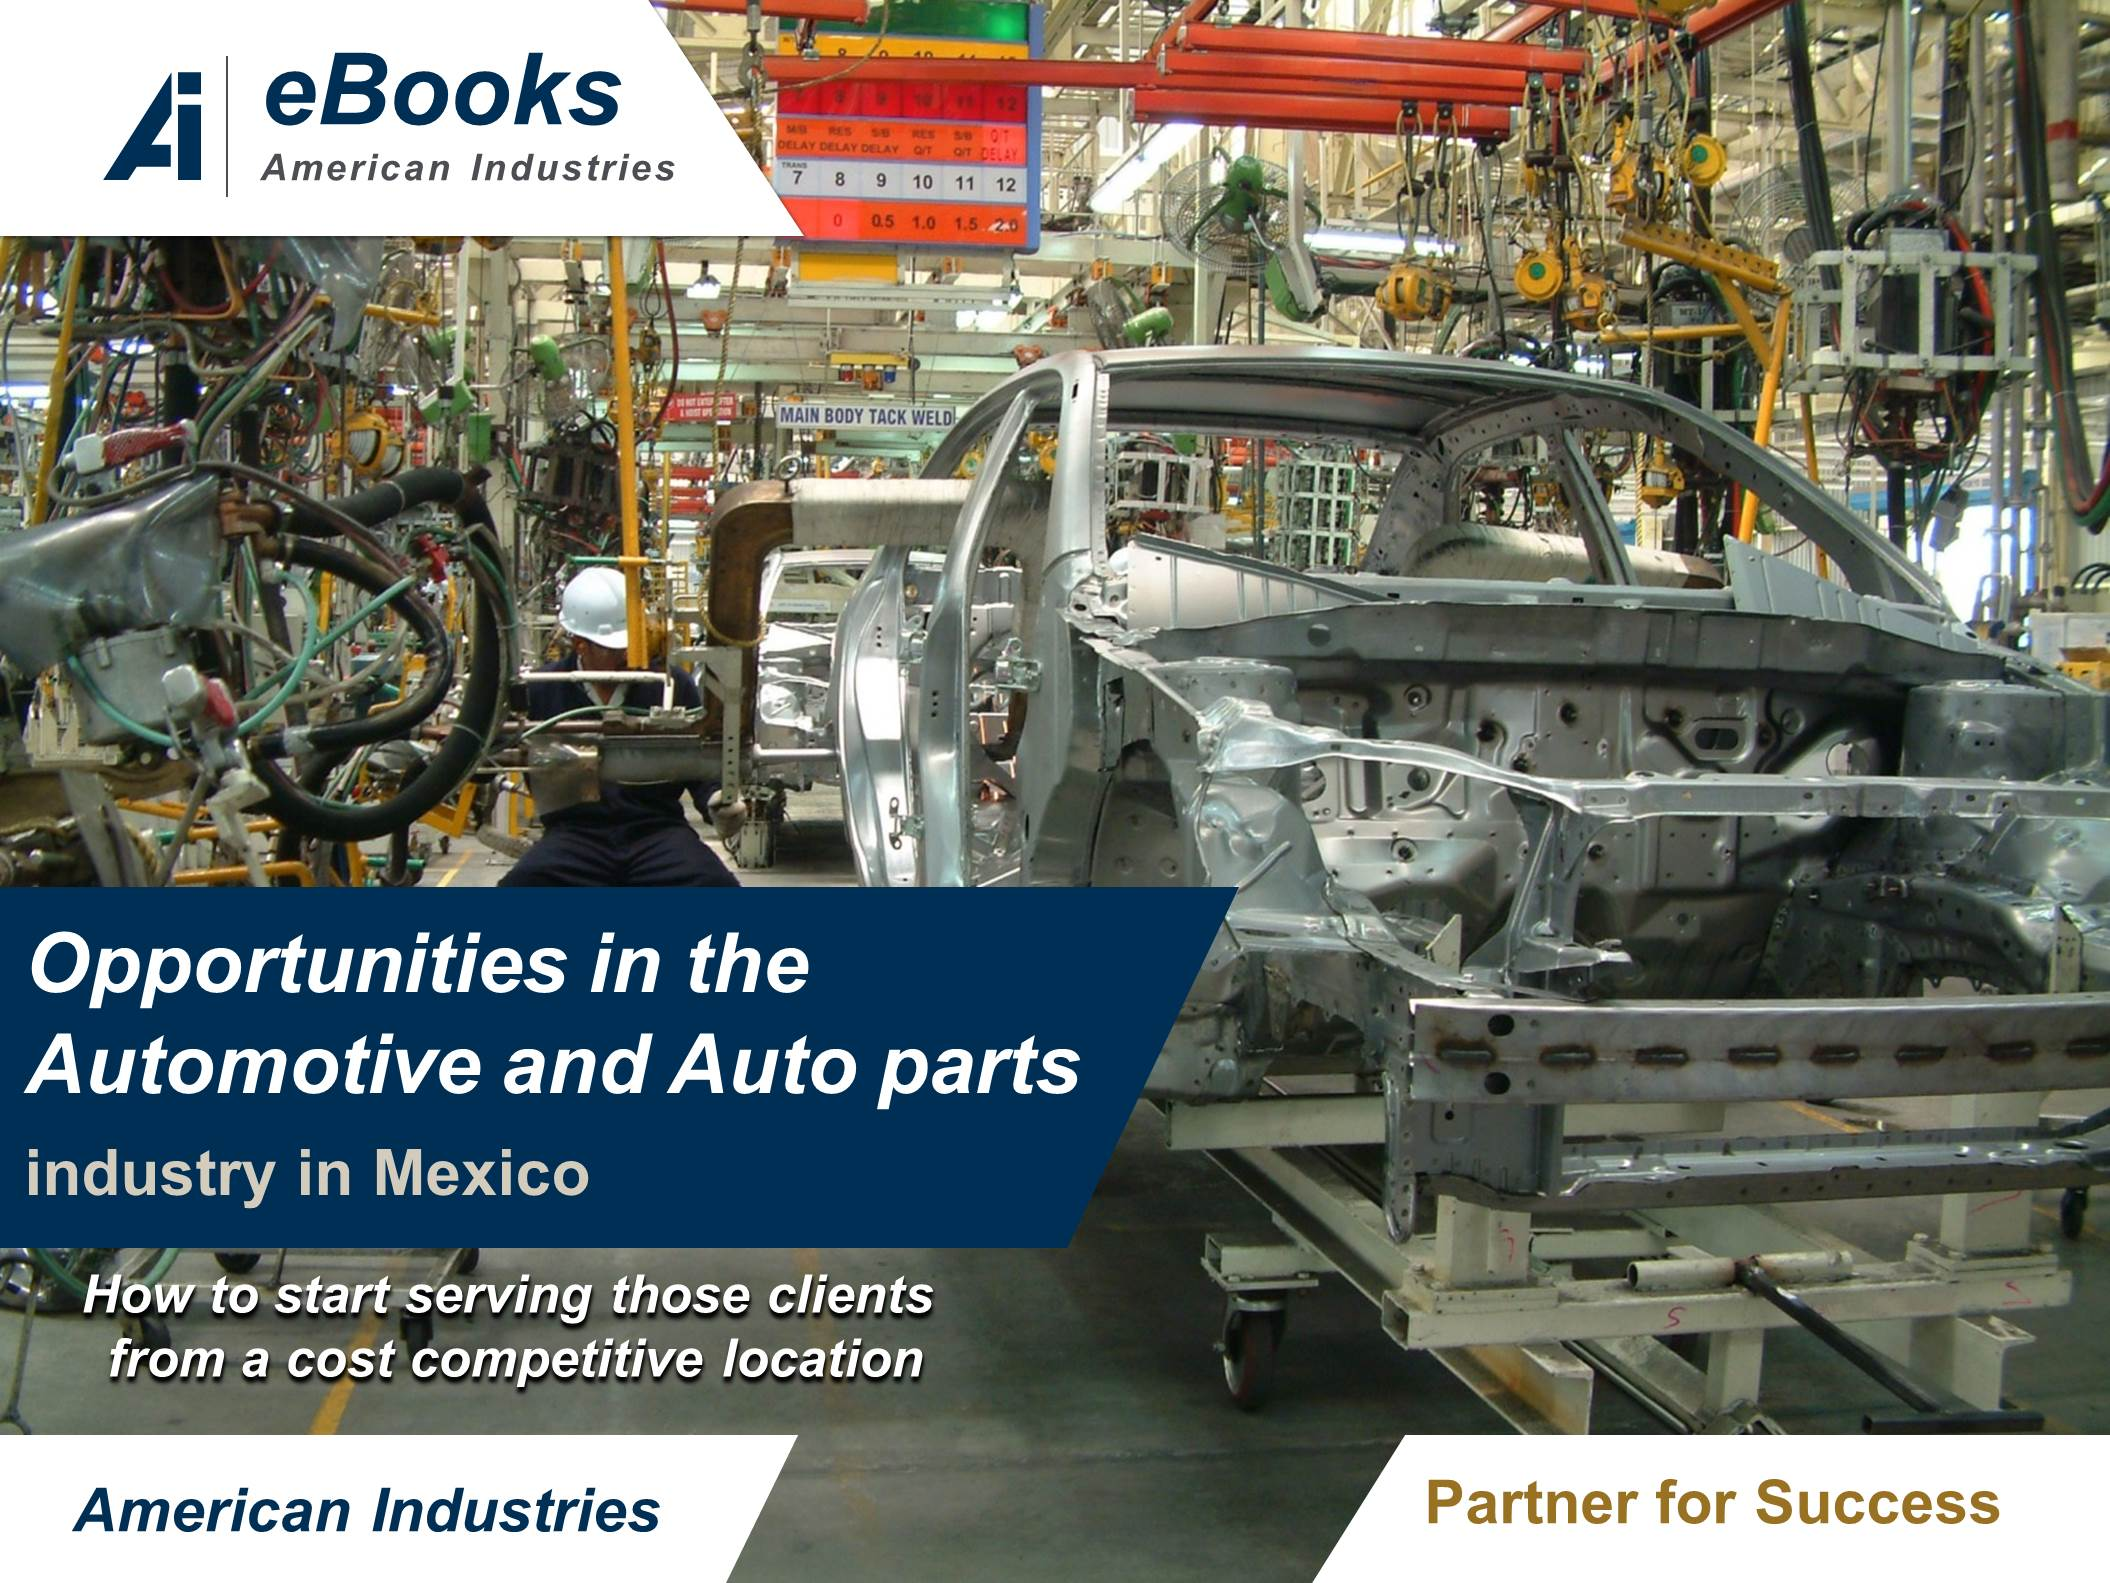 Top 10 opportunities in th Automotive and Autoparts in Mexico